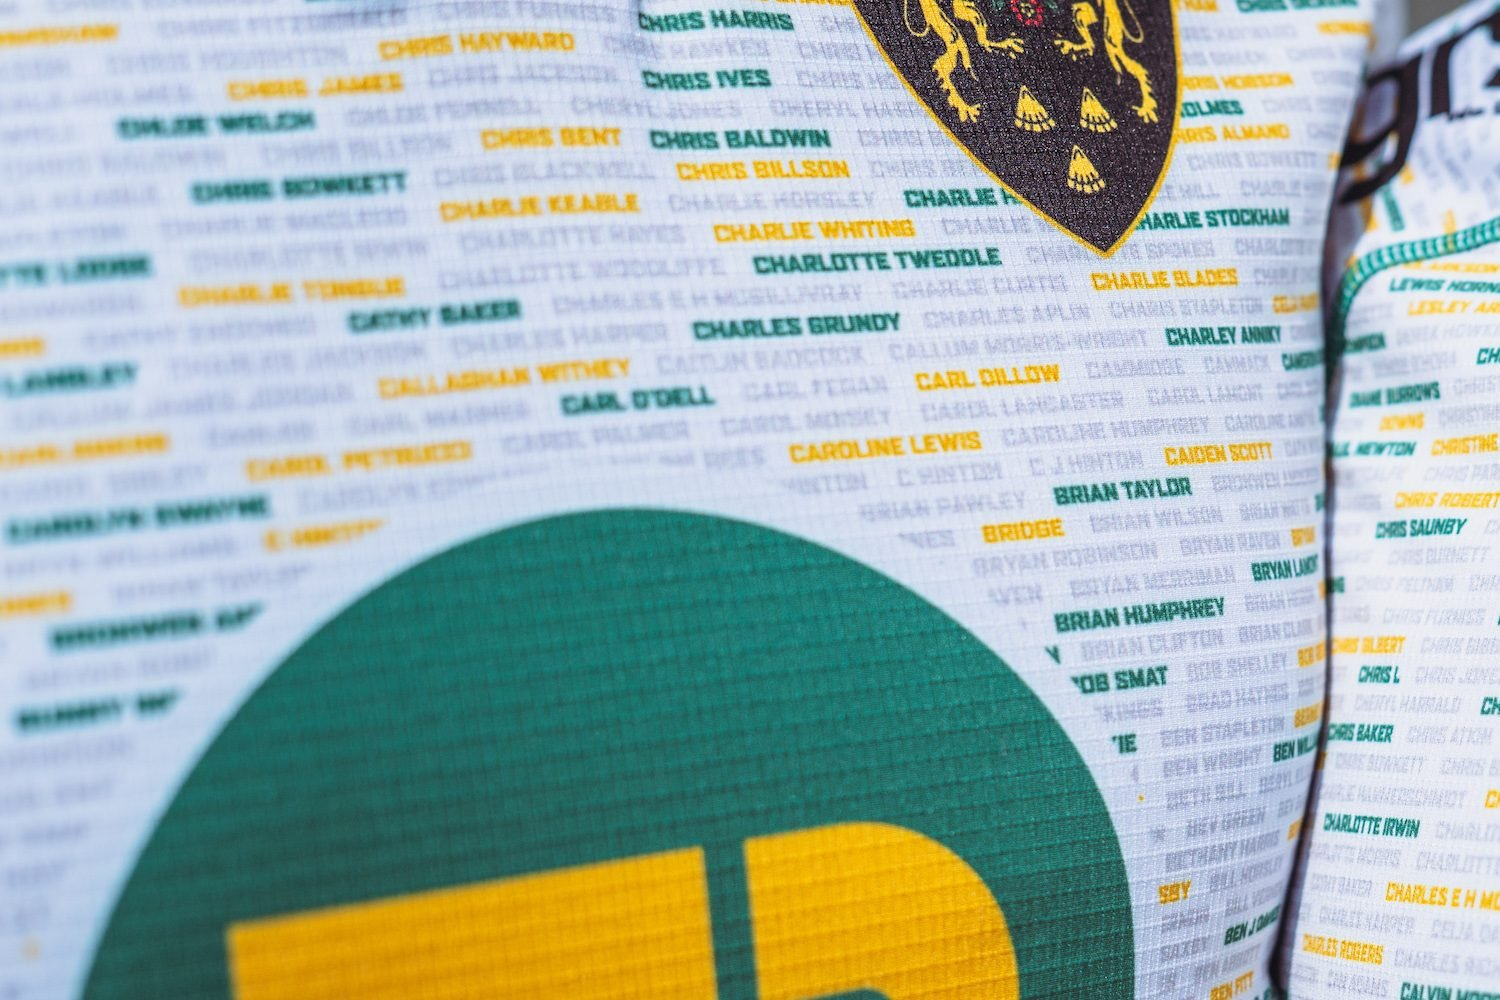 Thousands of supporters' names are weaved into Saints' 2021/22 Away Kit